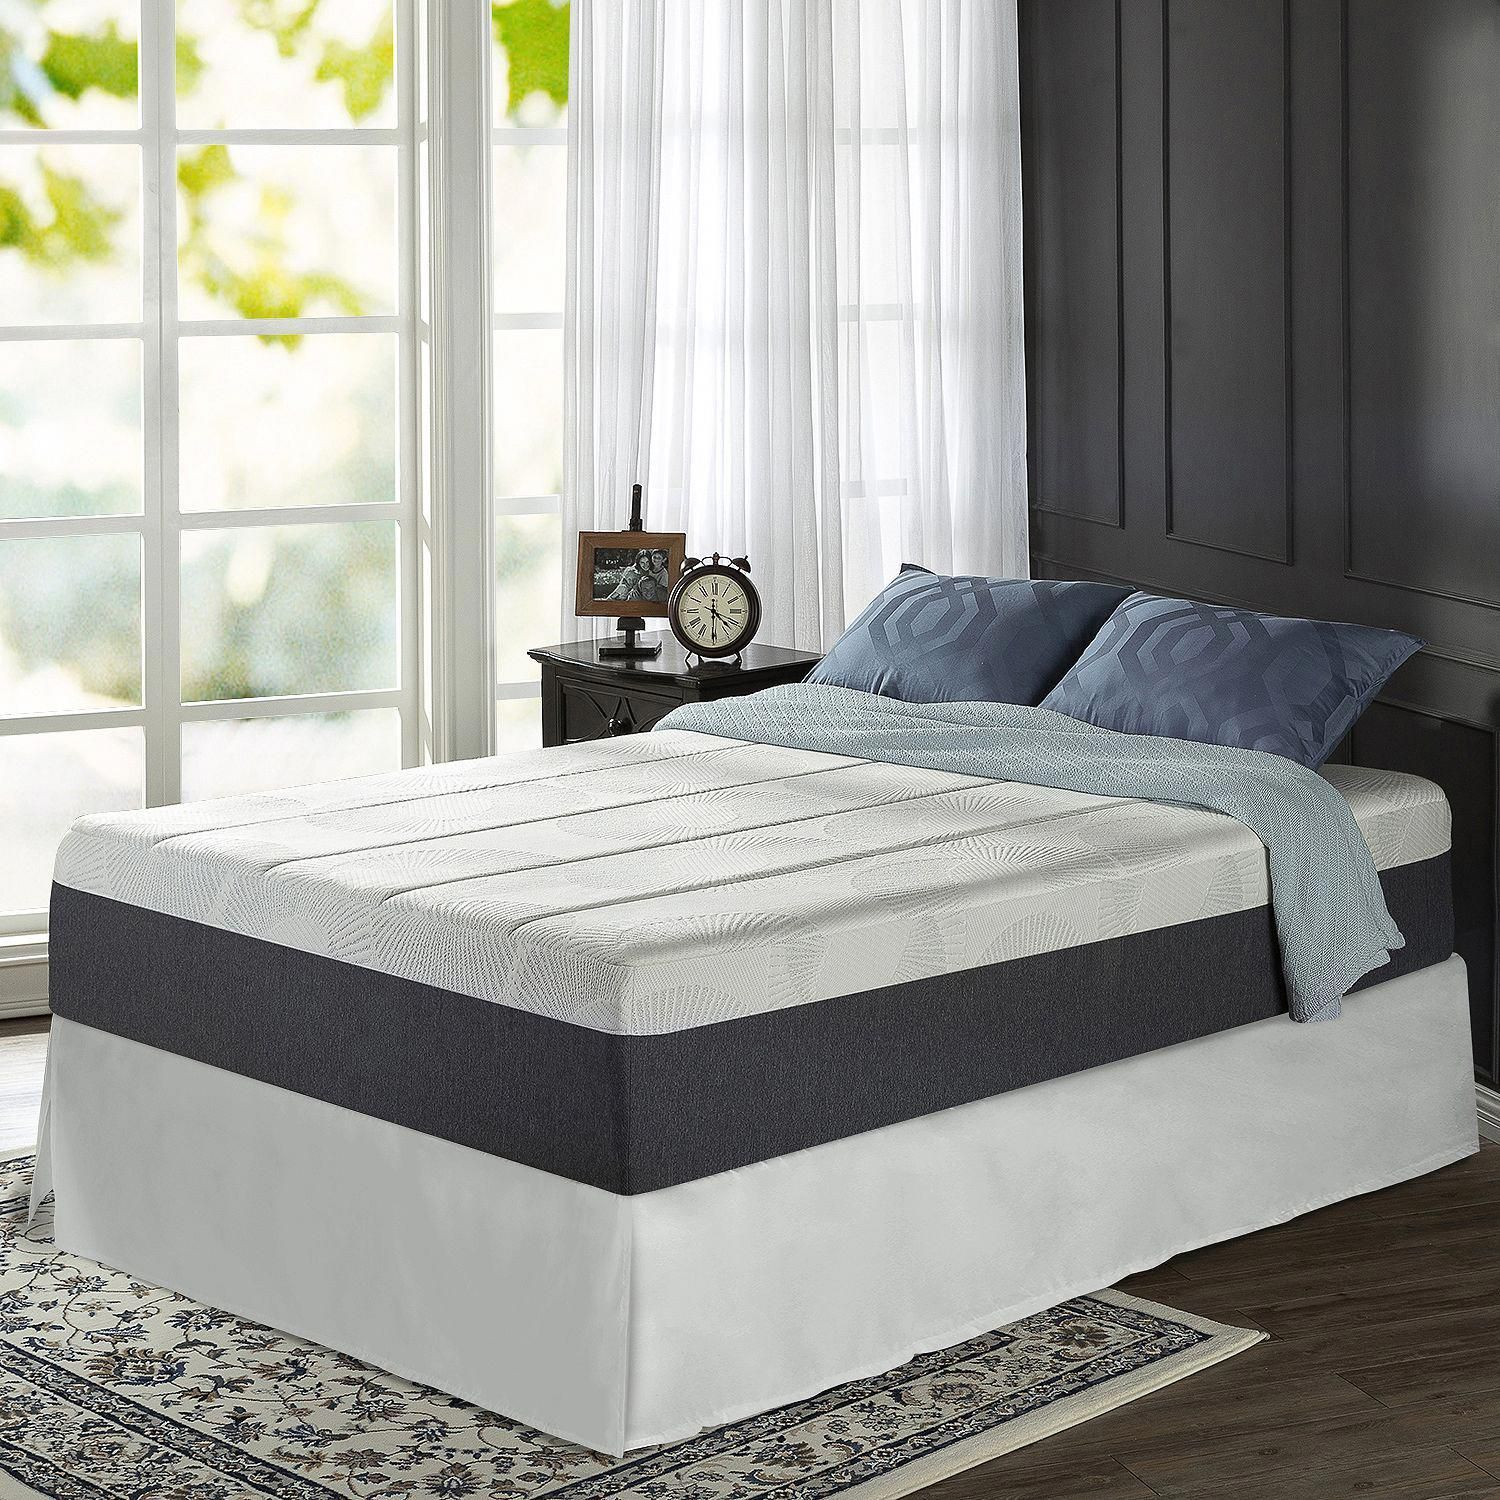 19 Fabulous Foam Mattress Rv King Foam Mattress And Box Spring Set Full Furniture Furnitureindonesia Foa Bed Frame Sets Queen Memory Foam Mattress Bed Frame